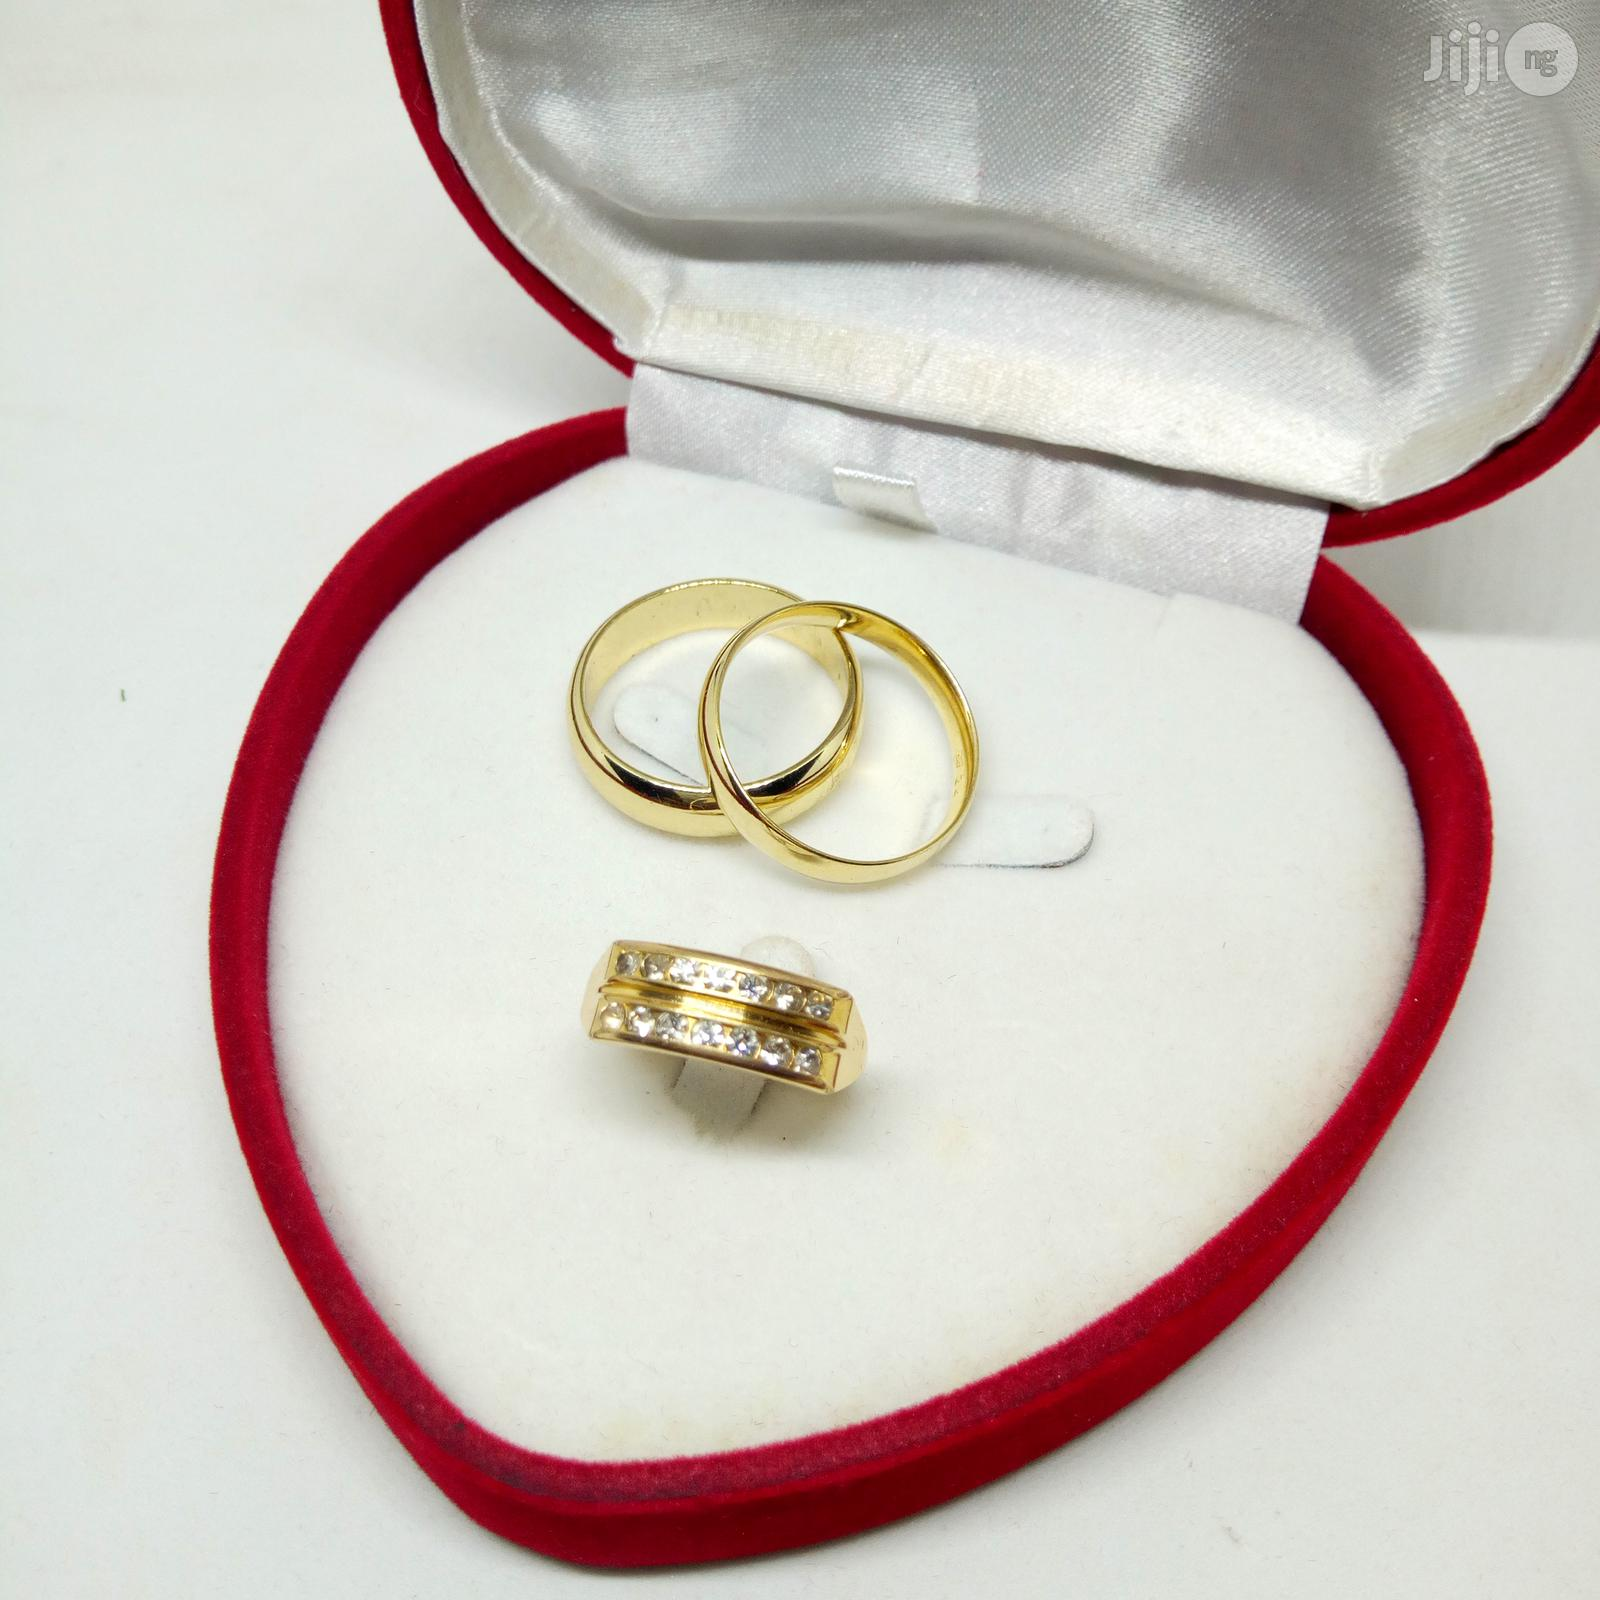 Brand New Romania Gold Engagement And Wedding Ring All Sizes Available